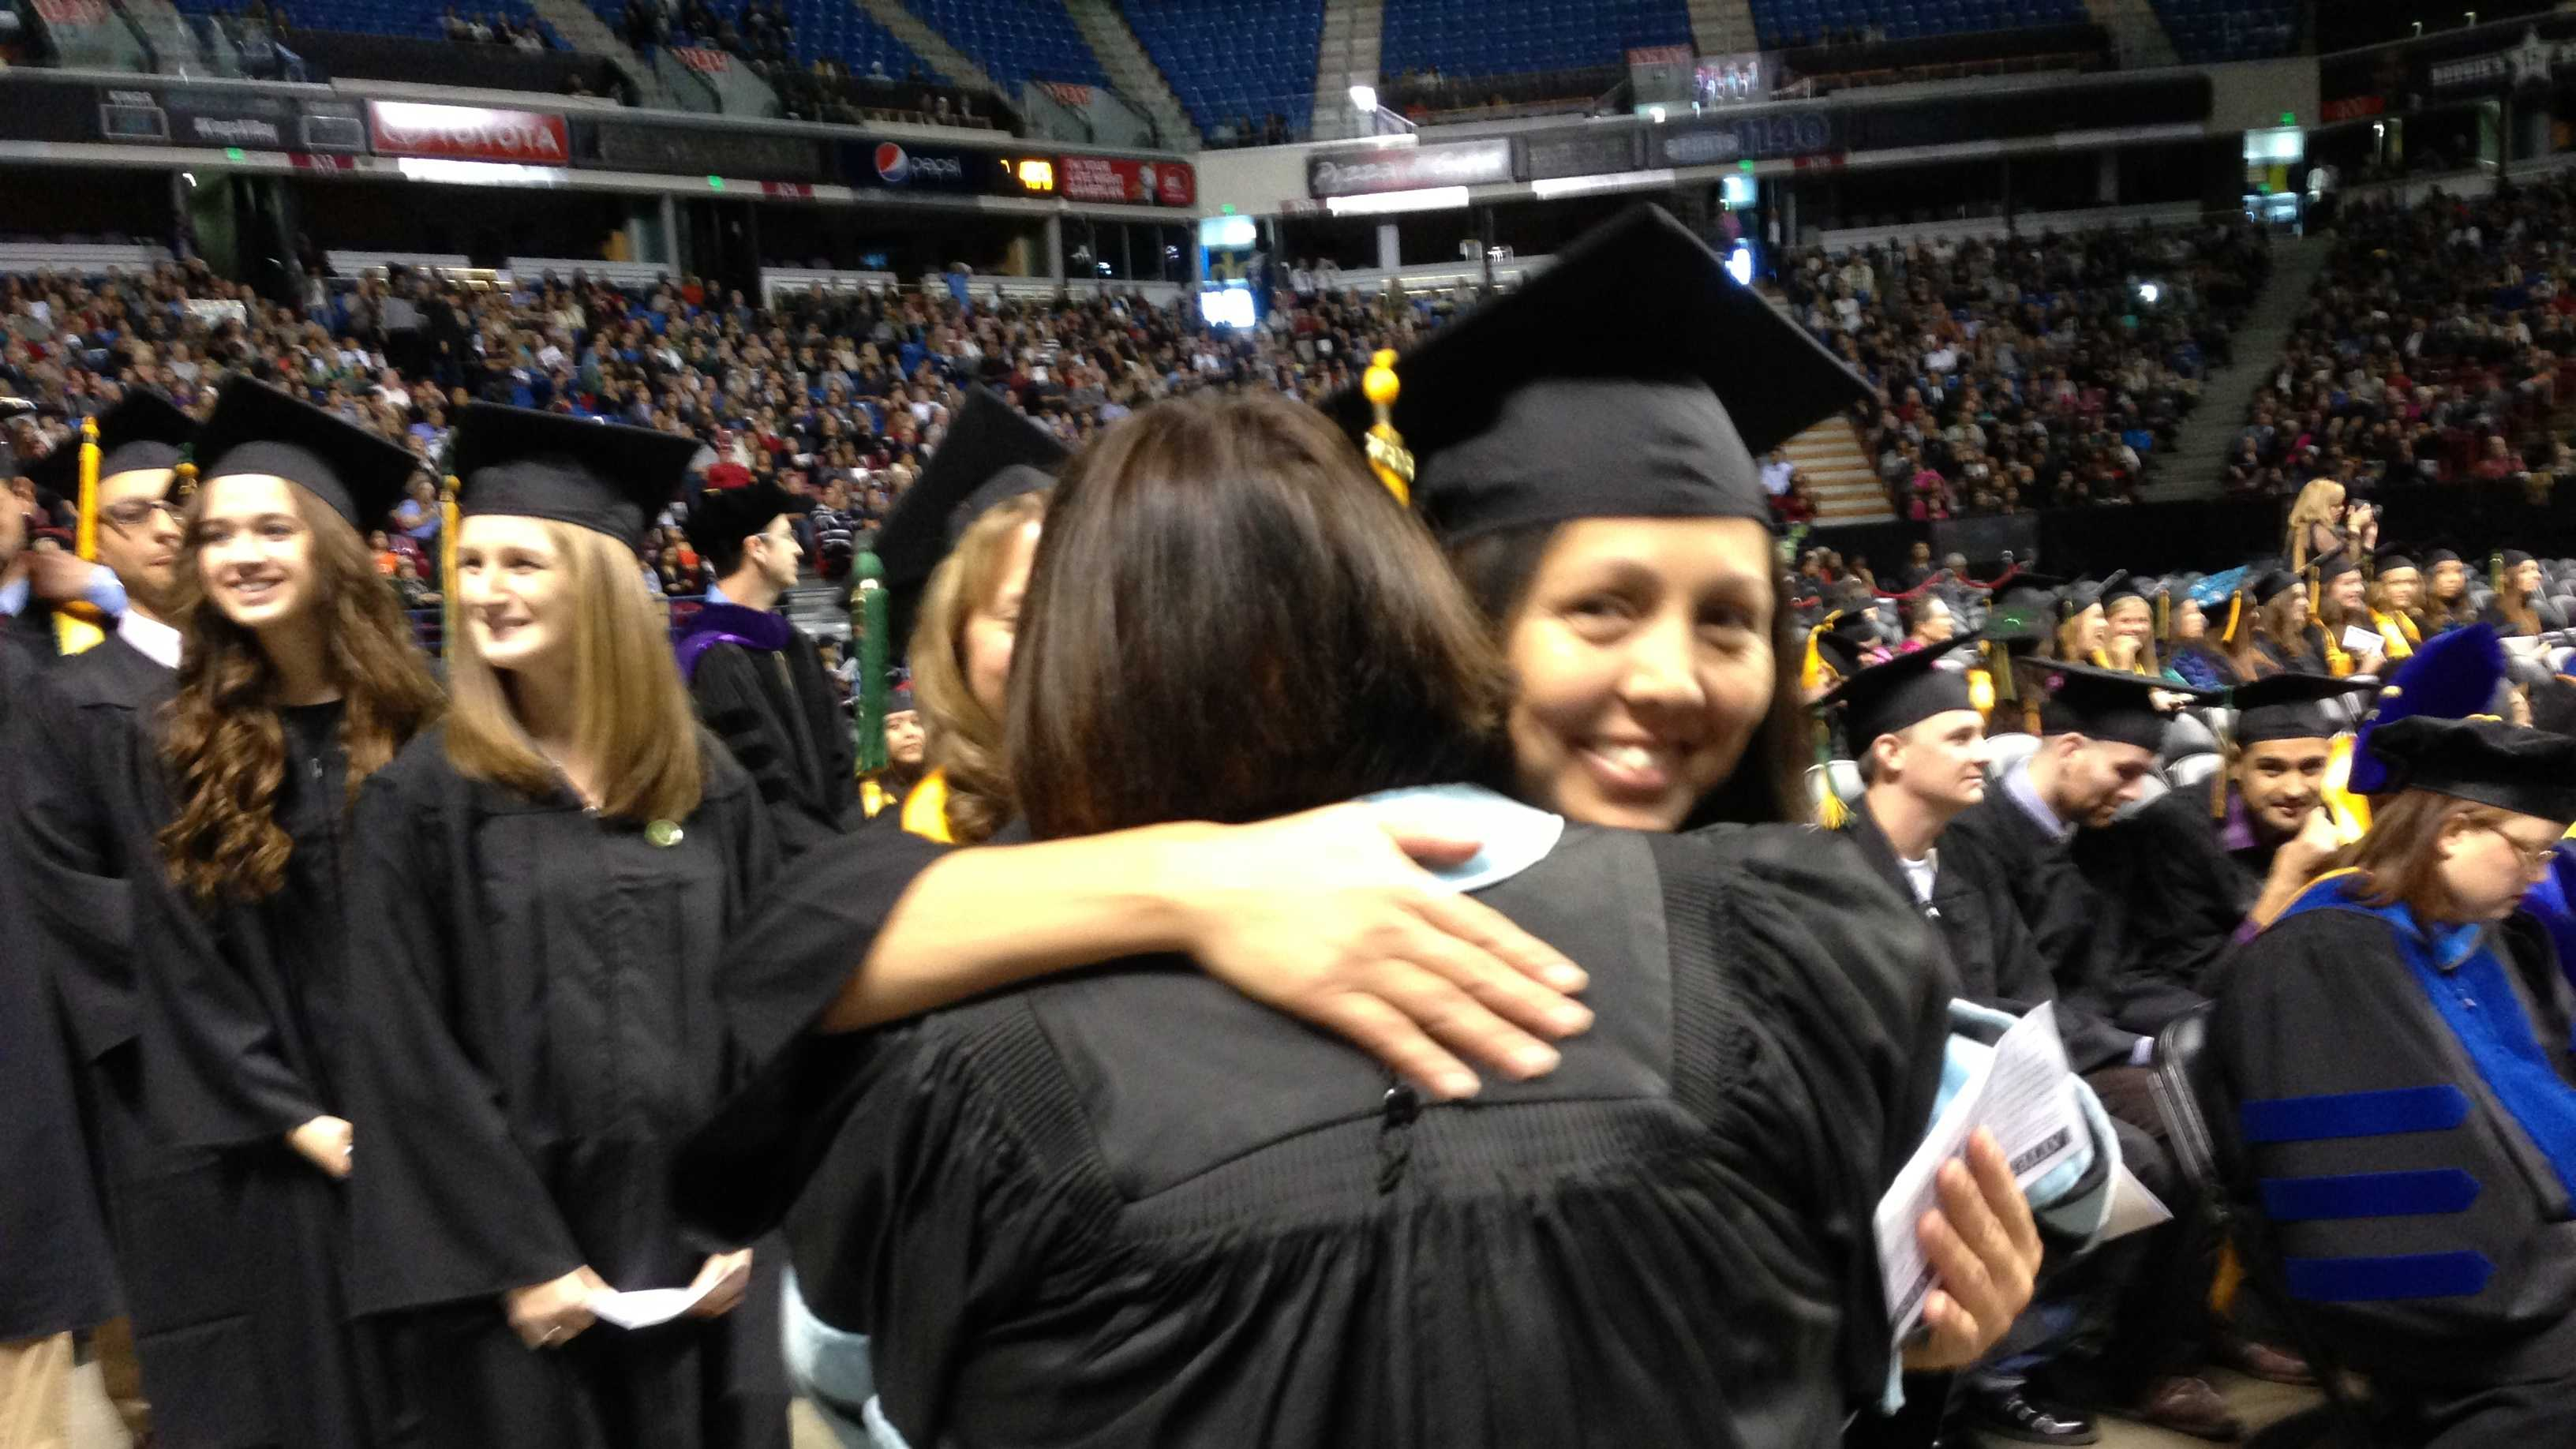 Students take part in Sacramento State University's winter graduation ceremonies.